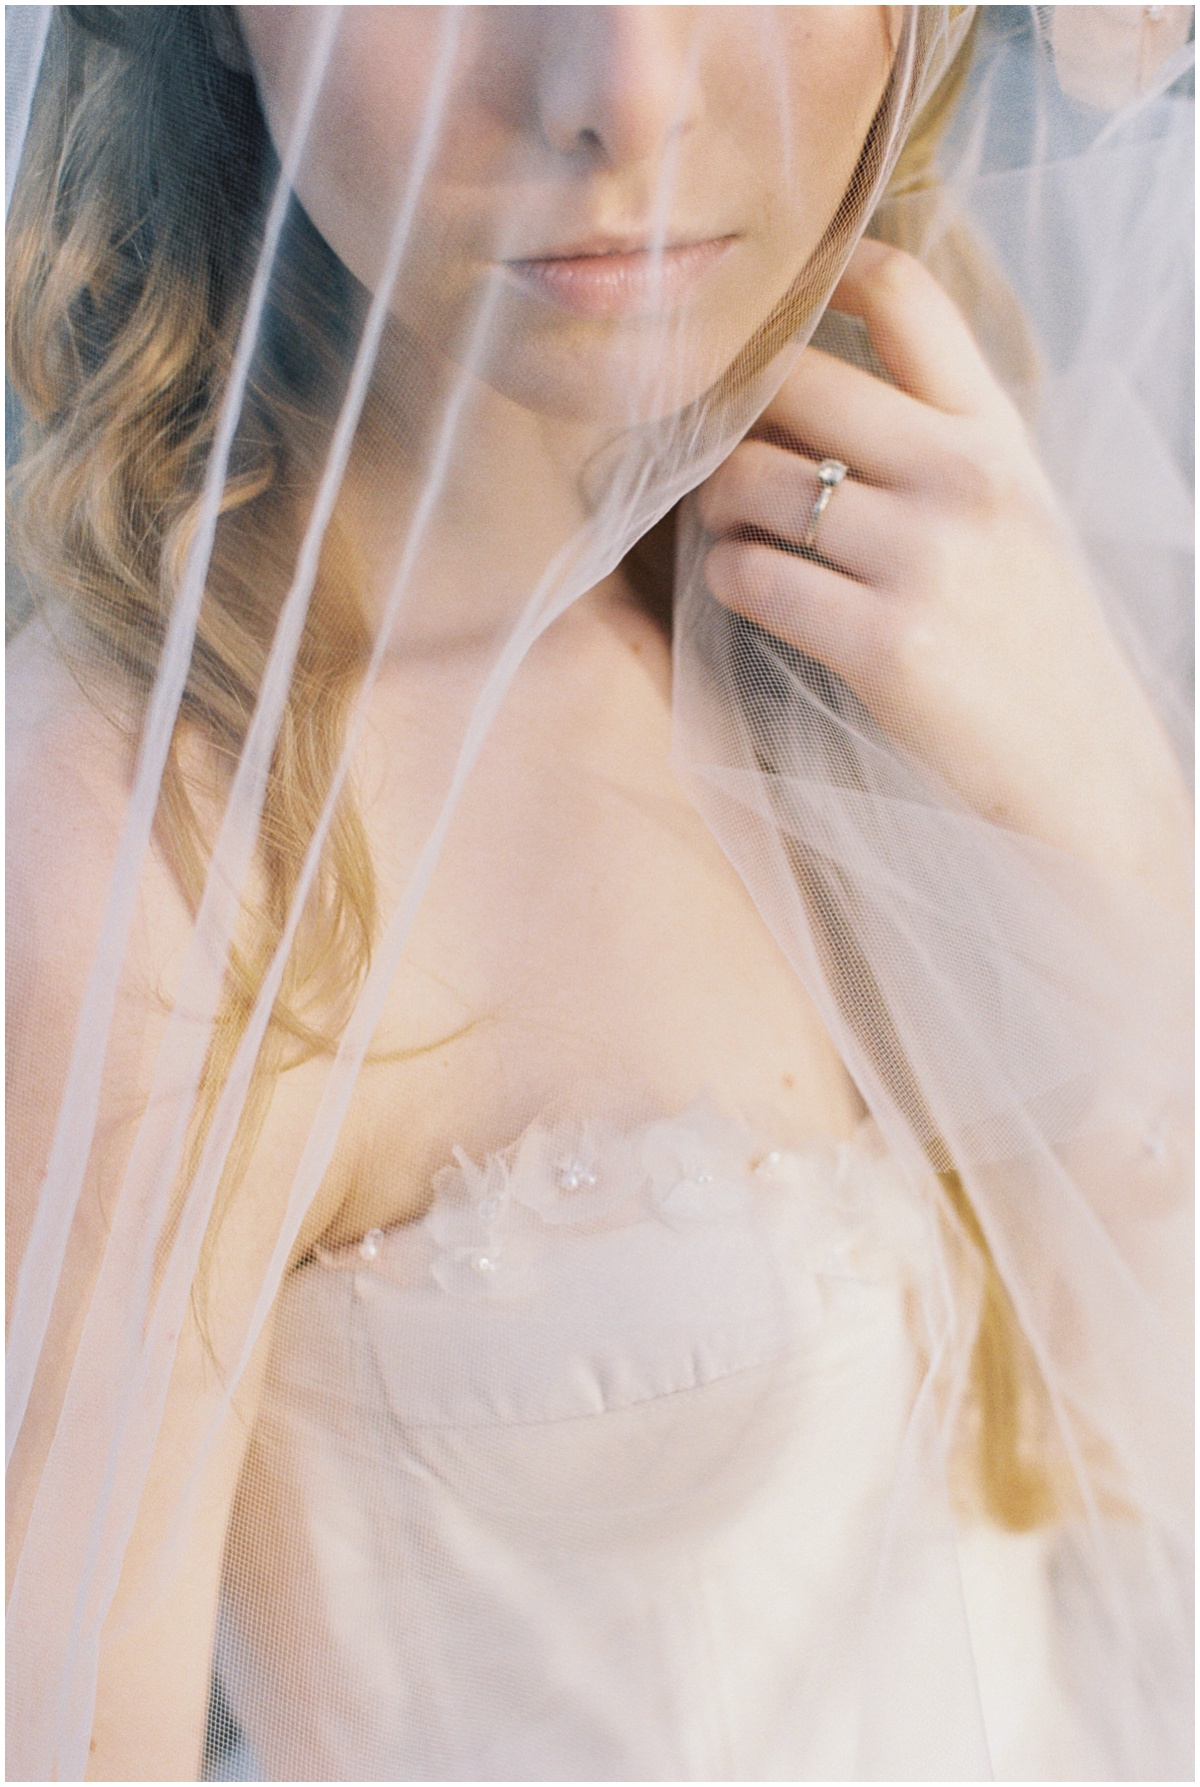 Abigail_Malone_Film_Wedding_Photography_KNoxville_TN_Blush_Dress_Outdoor_Windy_Pink_and_Green_Wedding_0031.jpg